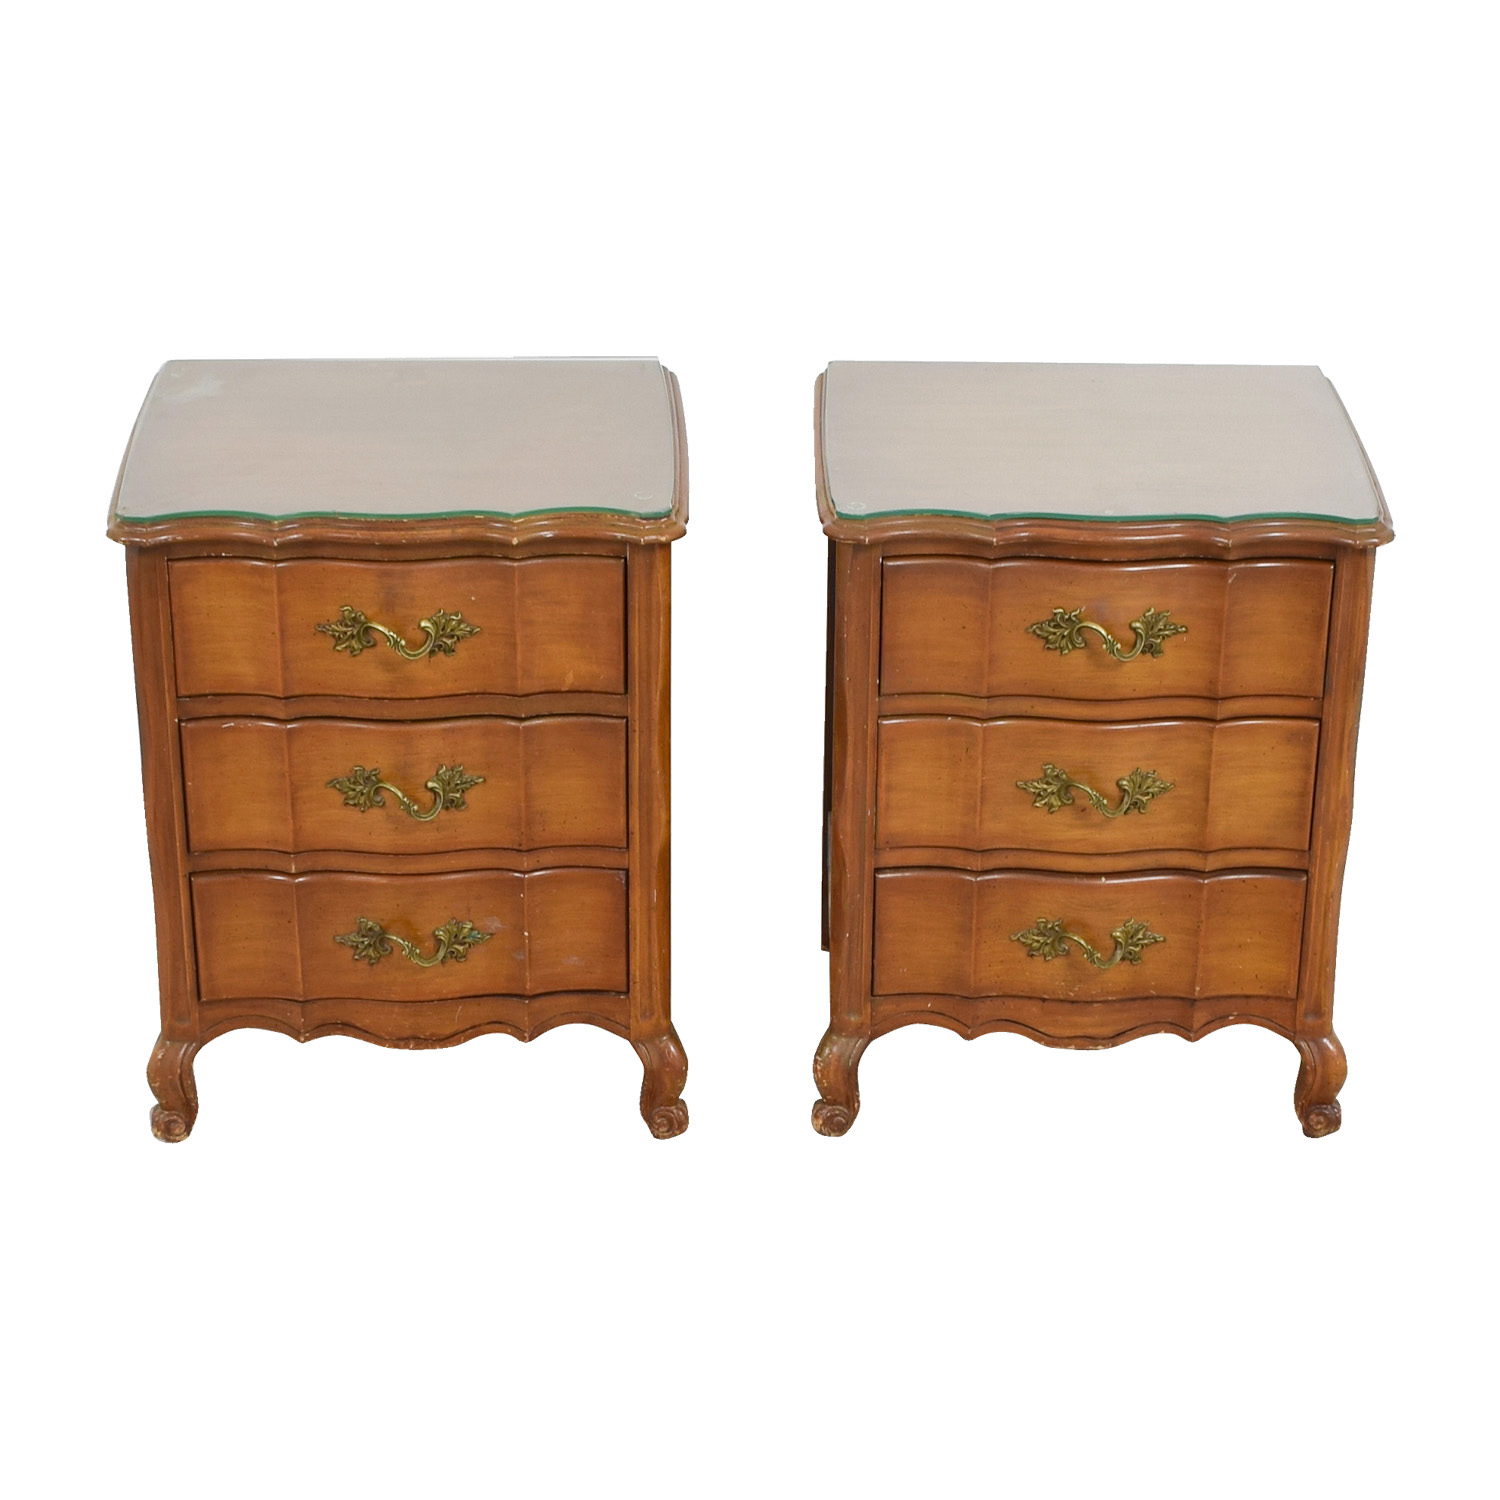 Three-Drawer Nightstands with Glass Top on sale